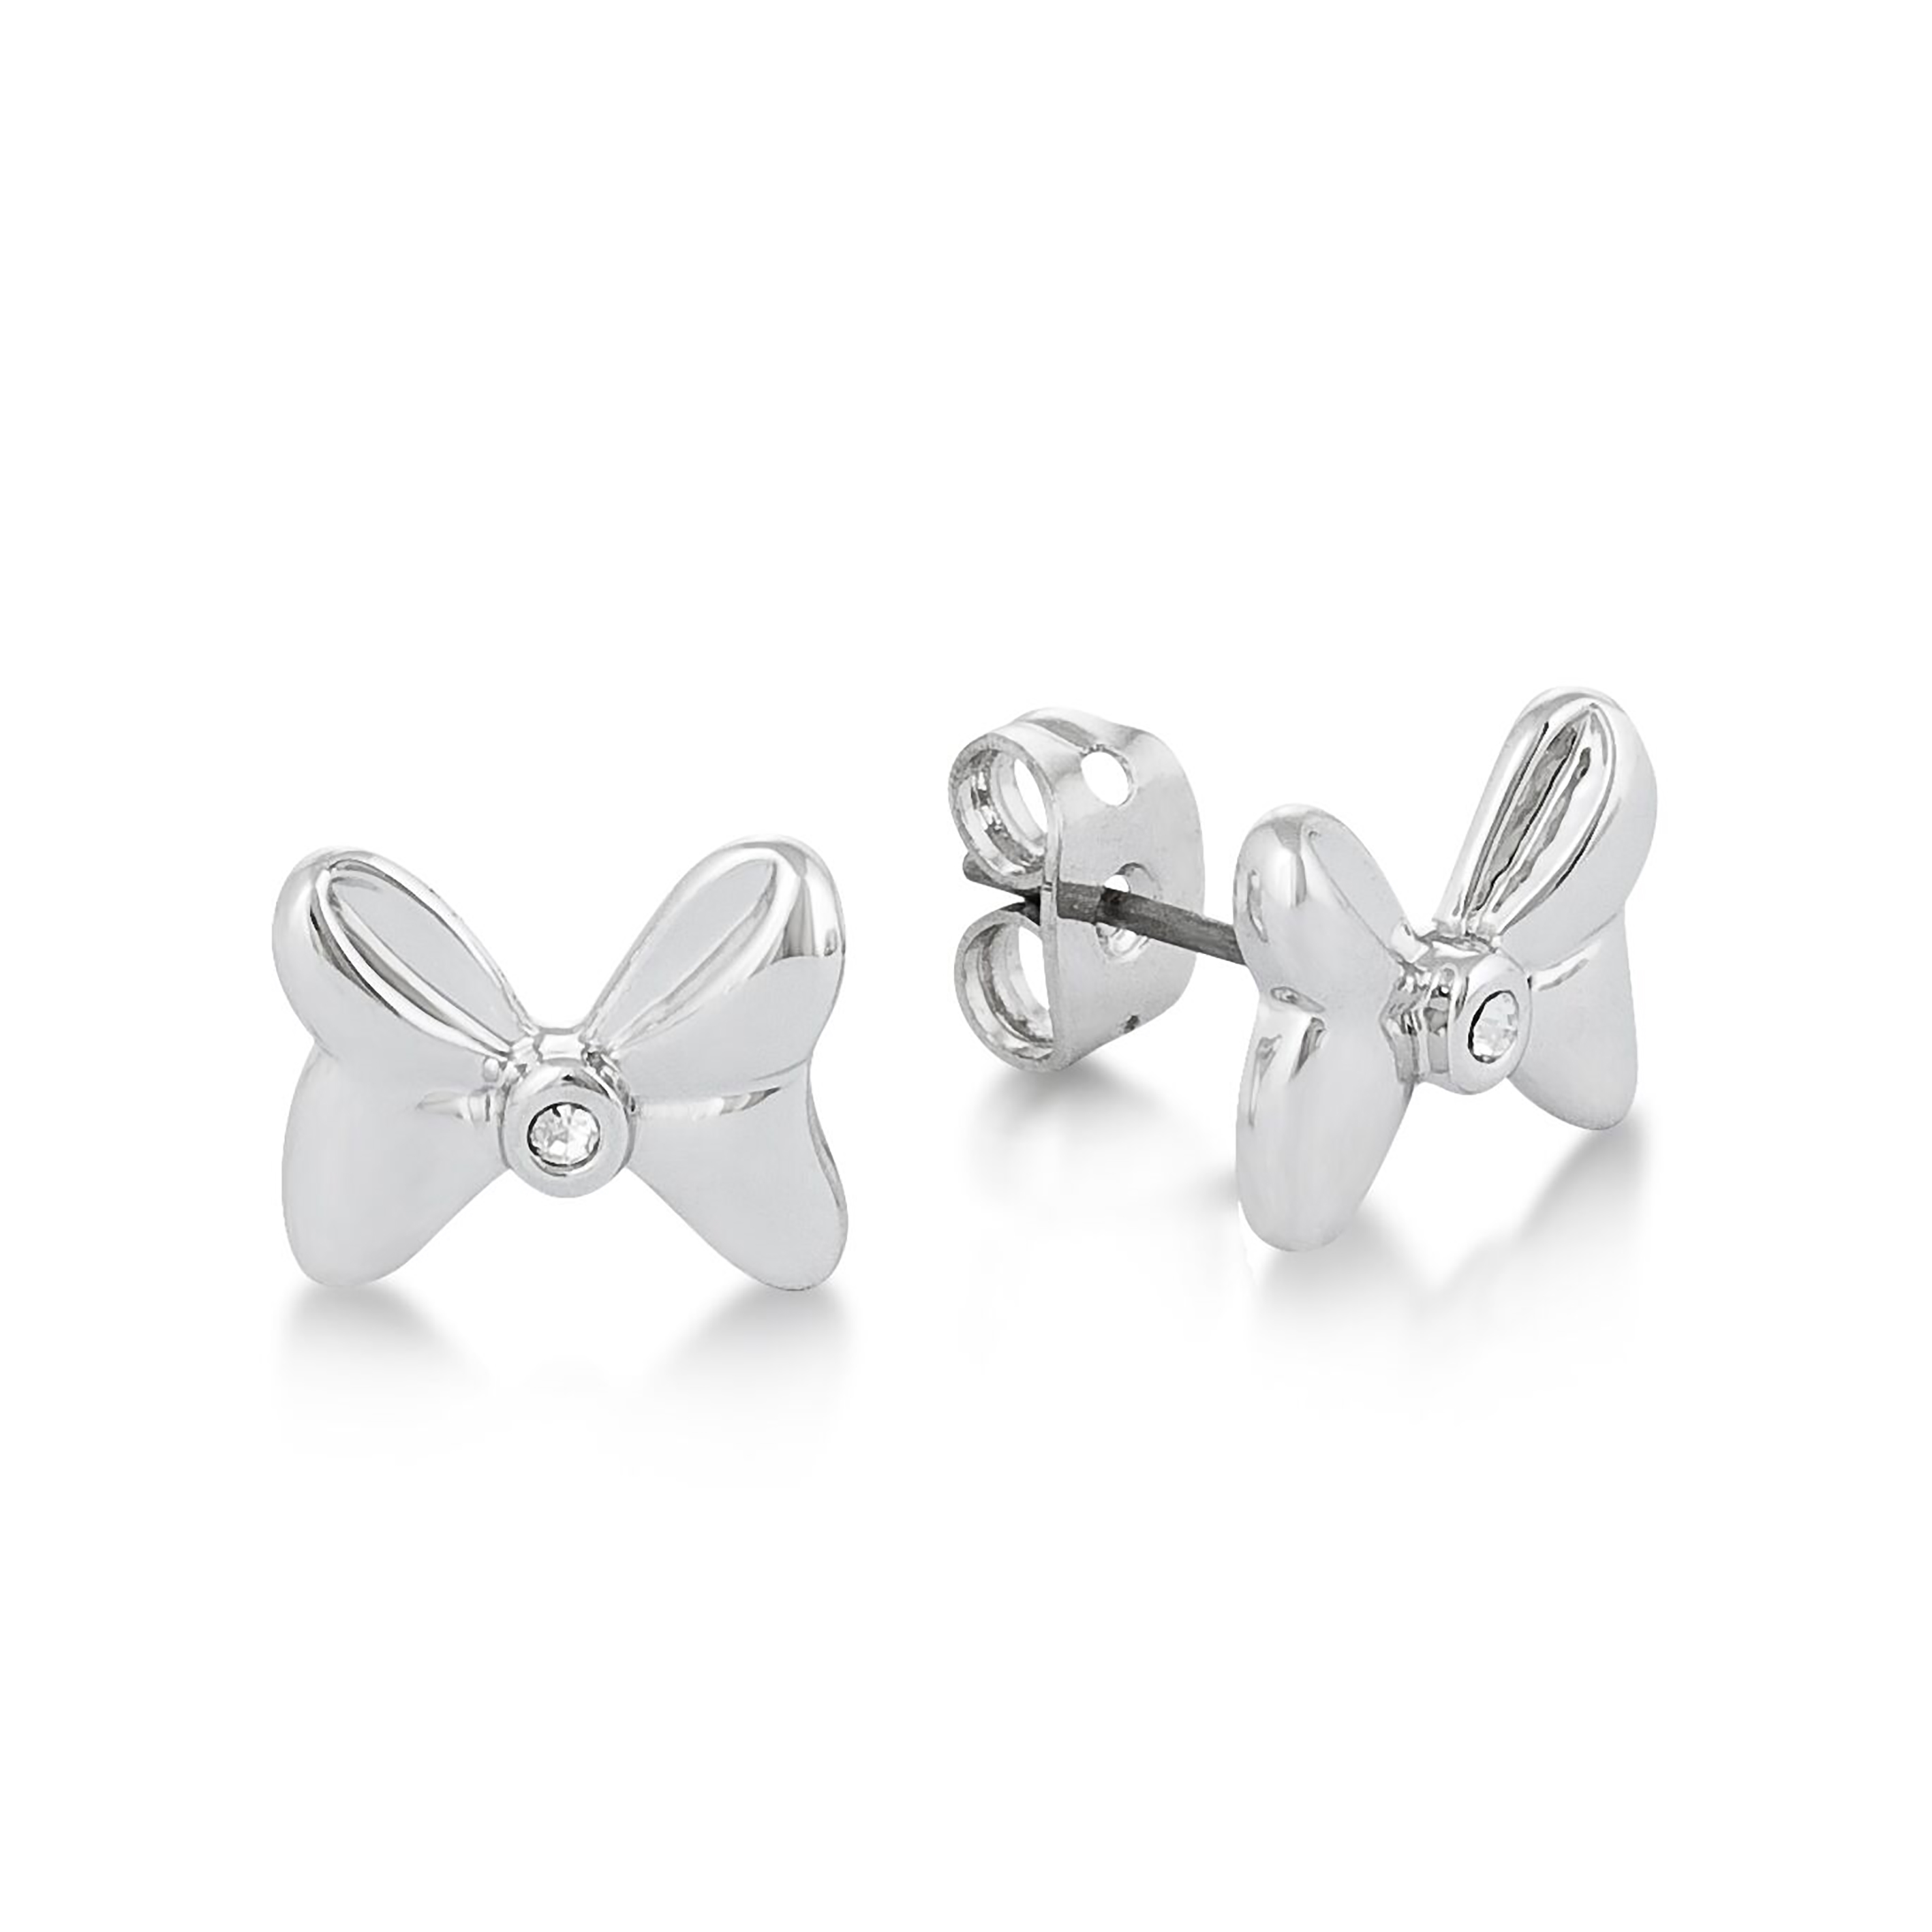 DISNEY Minnie Mouse Crystal Bow Stud Earrings